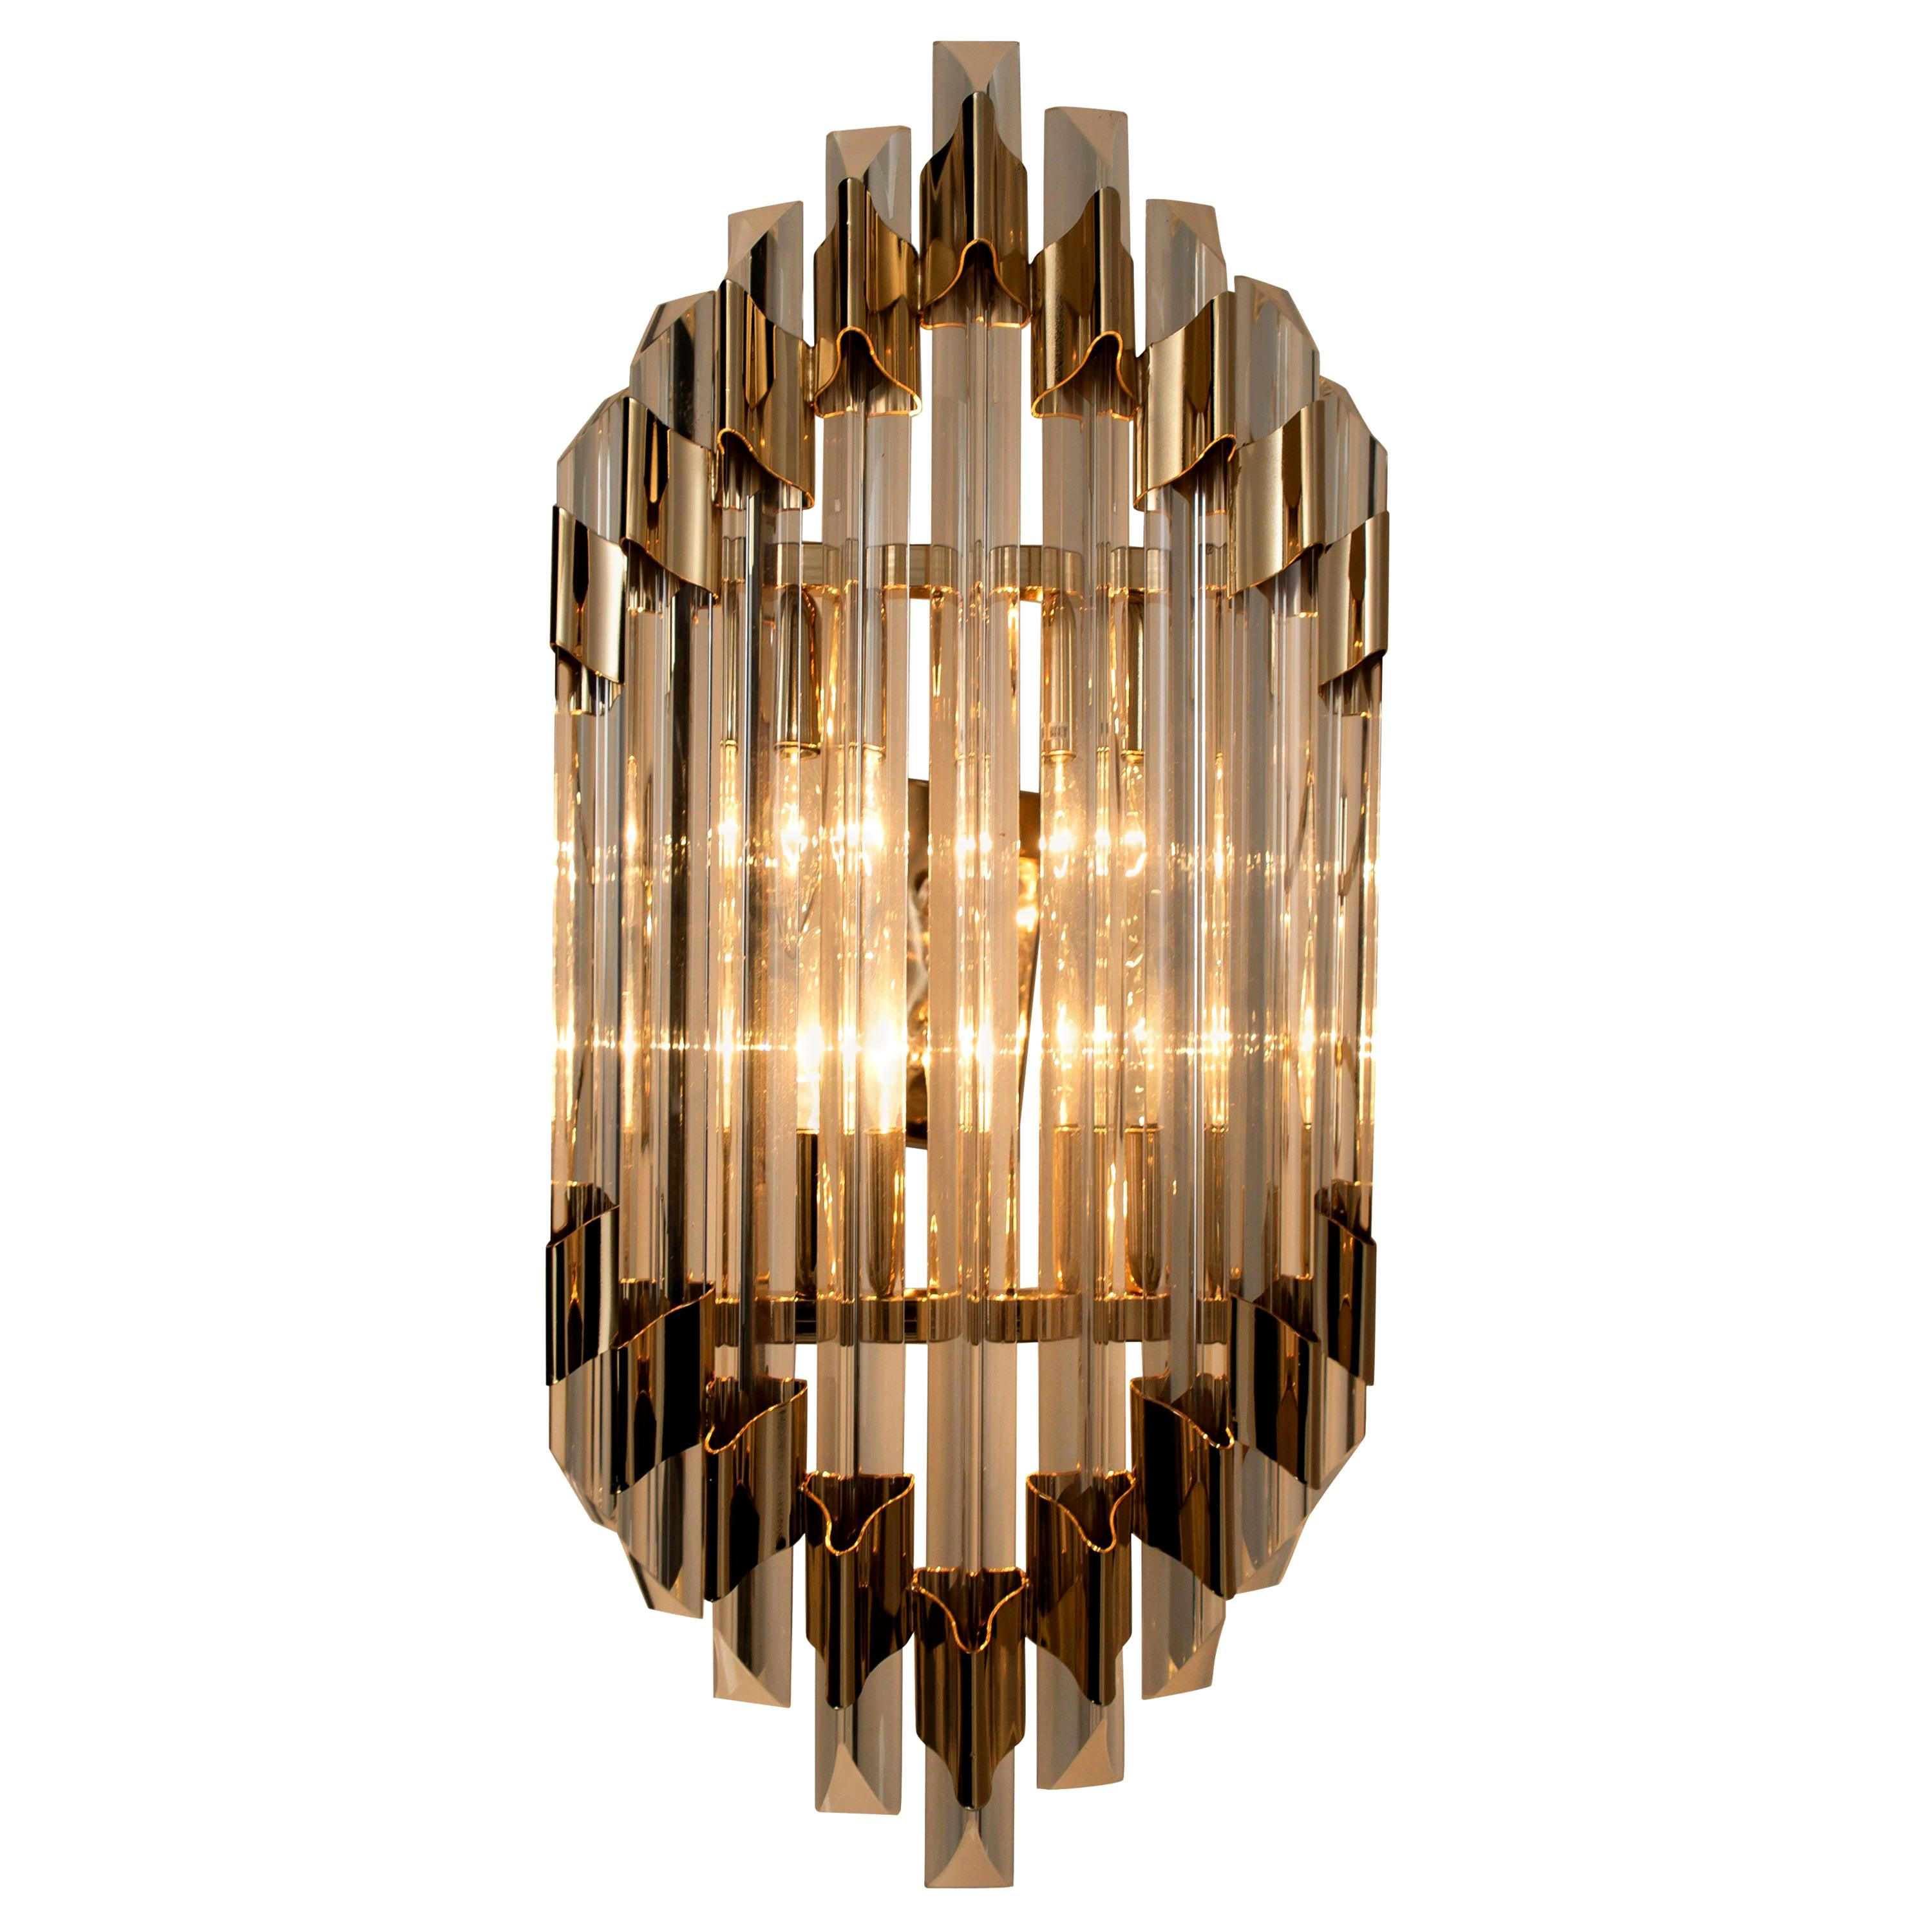 Large Venini Style Murano Glass and Brass Sconce Flushmount, Italy